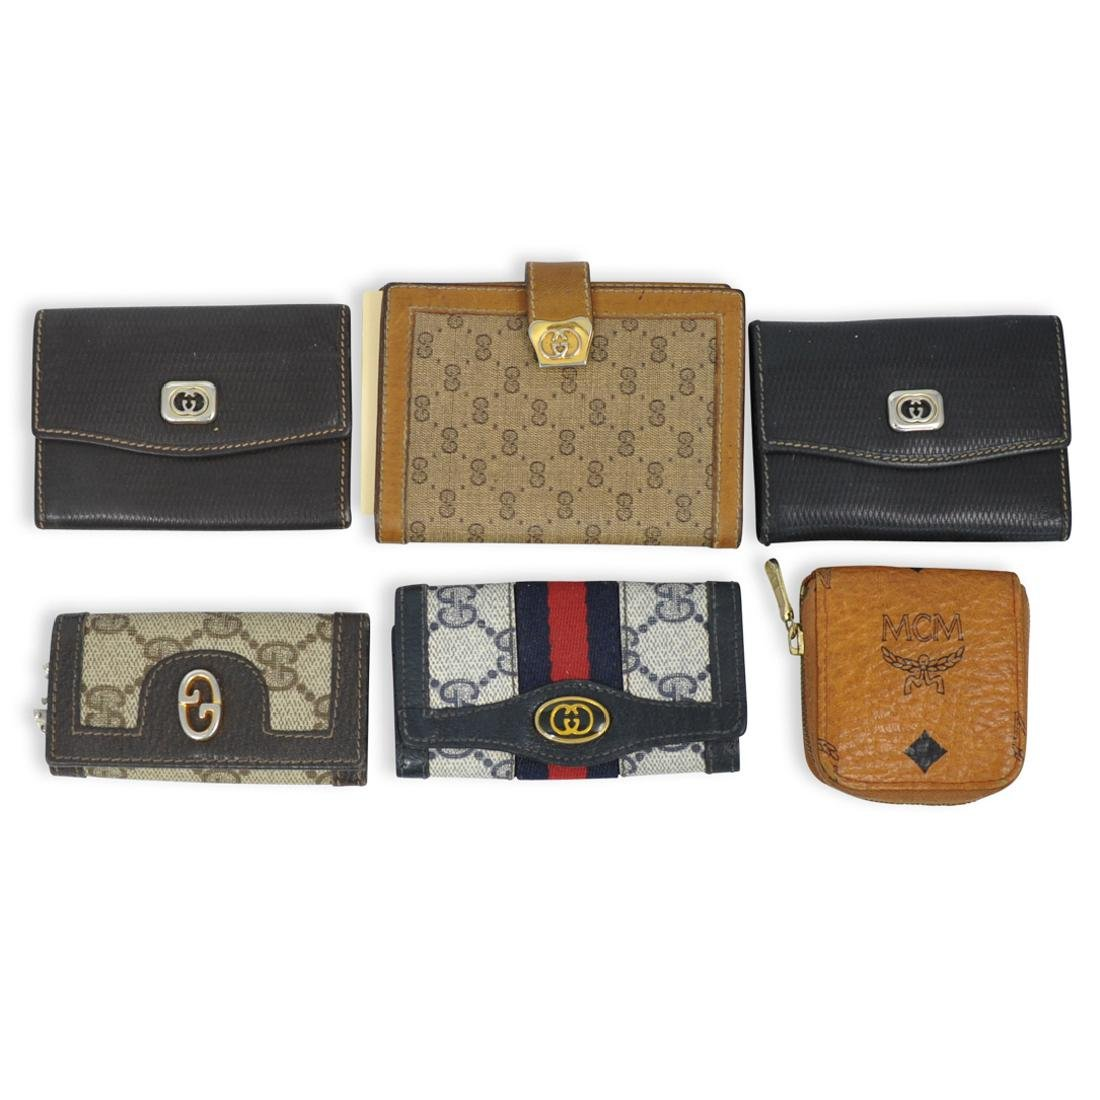 (6 Pc) Gucci Coin Purses